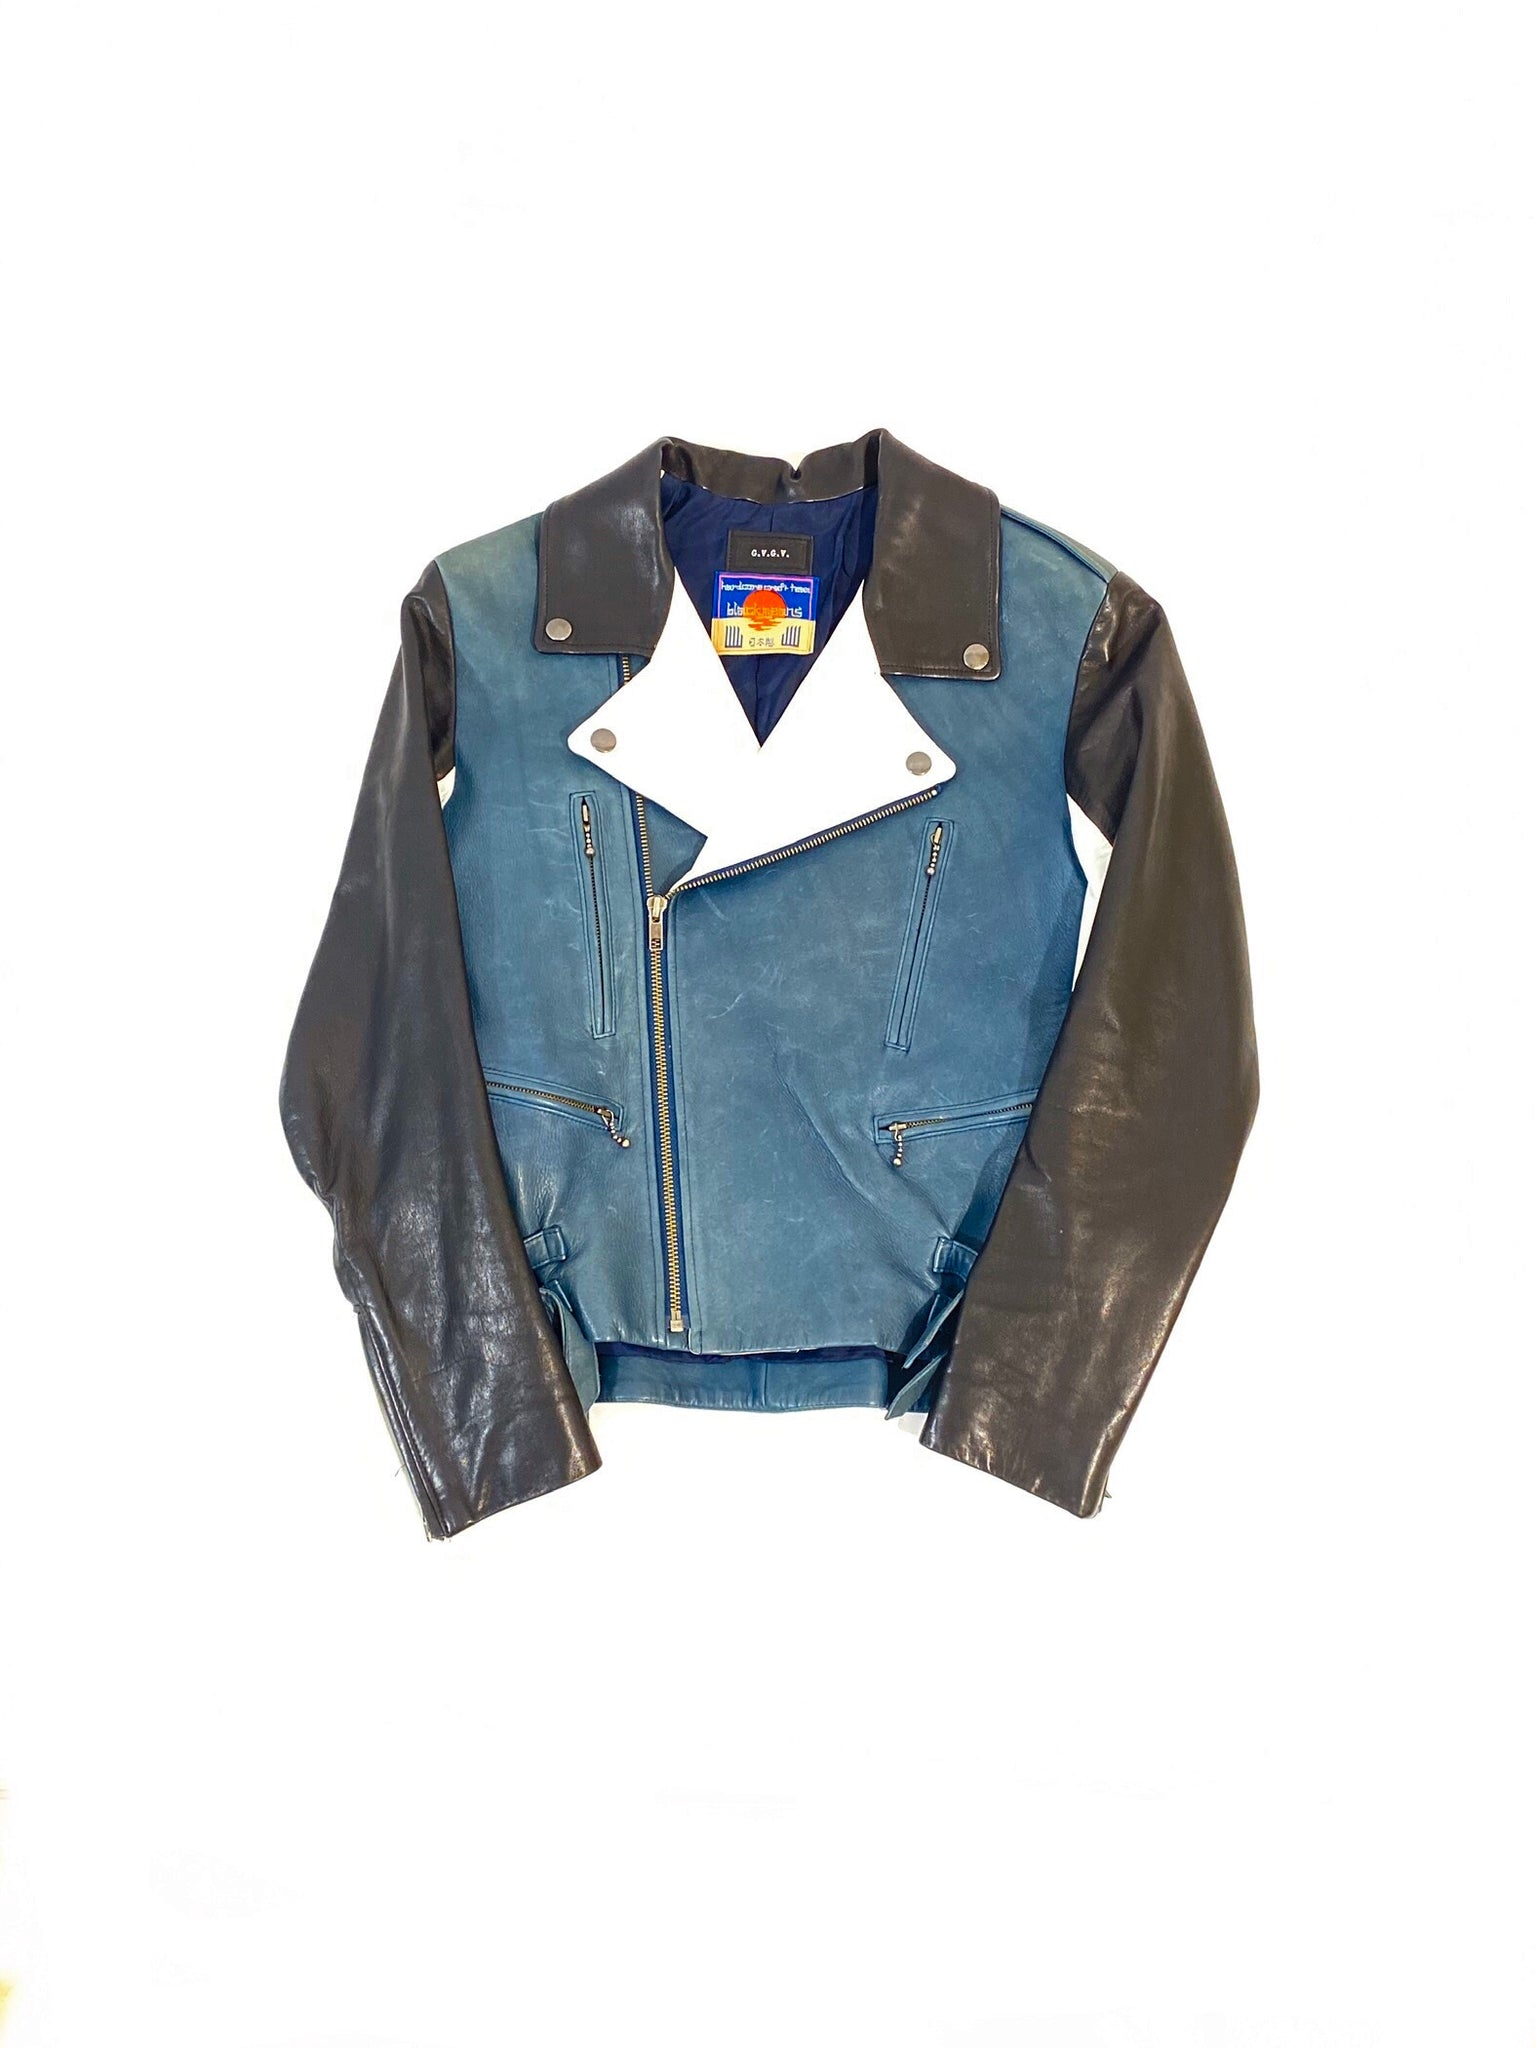 Women's Blackmeans x GVGV Leather Biker Jacket